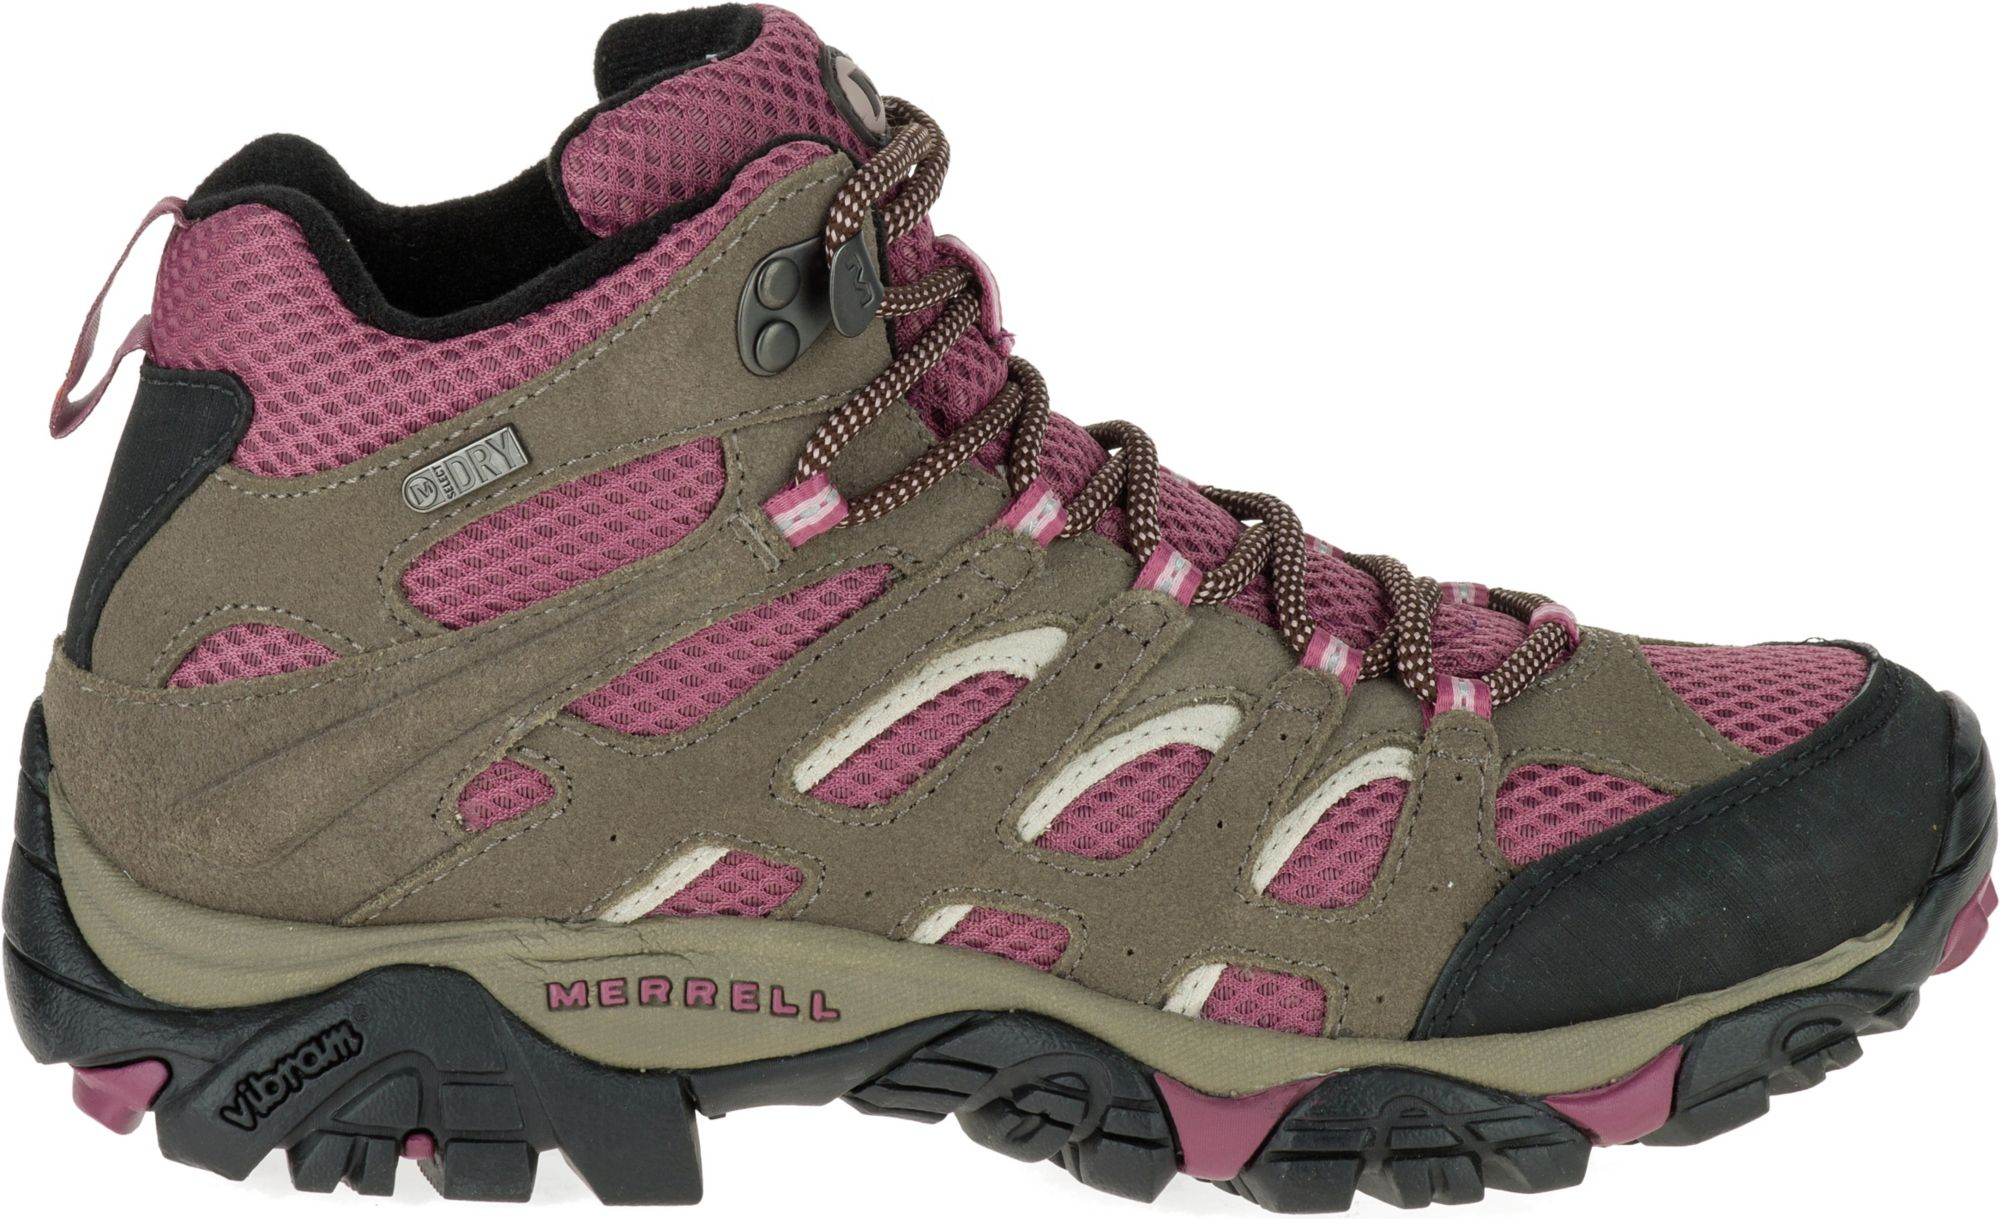 Merrell Women's Moab Mid Waterproof Hiking Boots| DICK'S Sporting ...